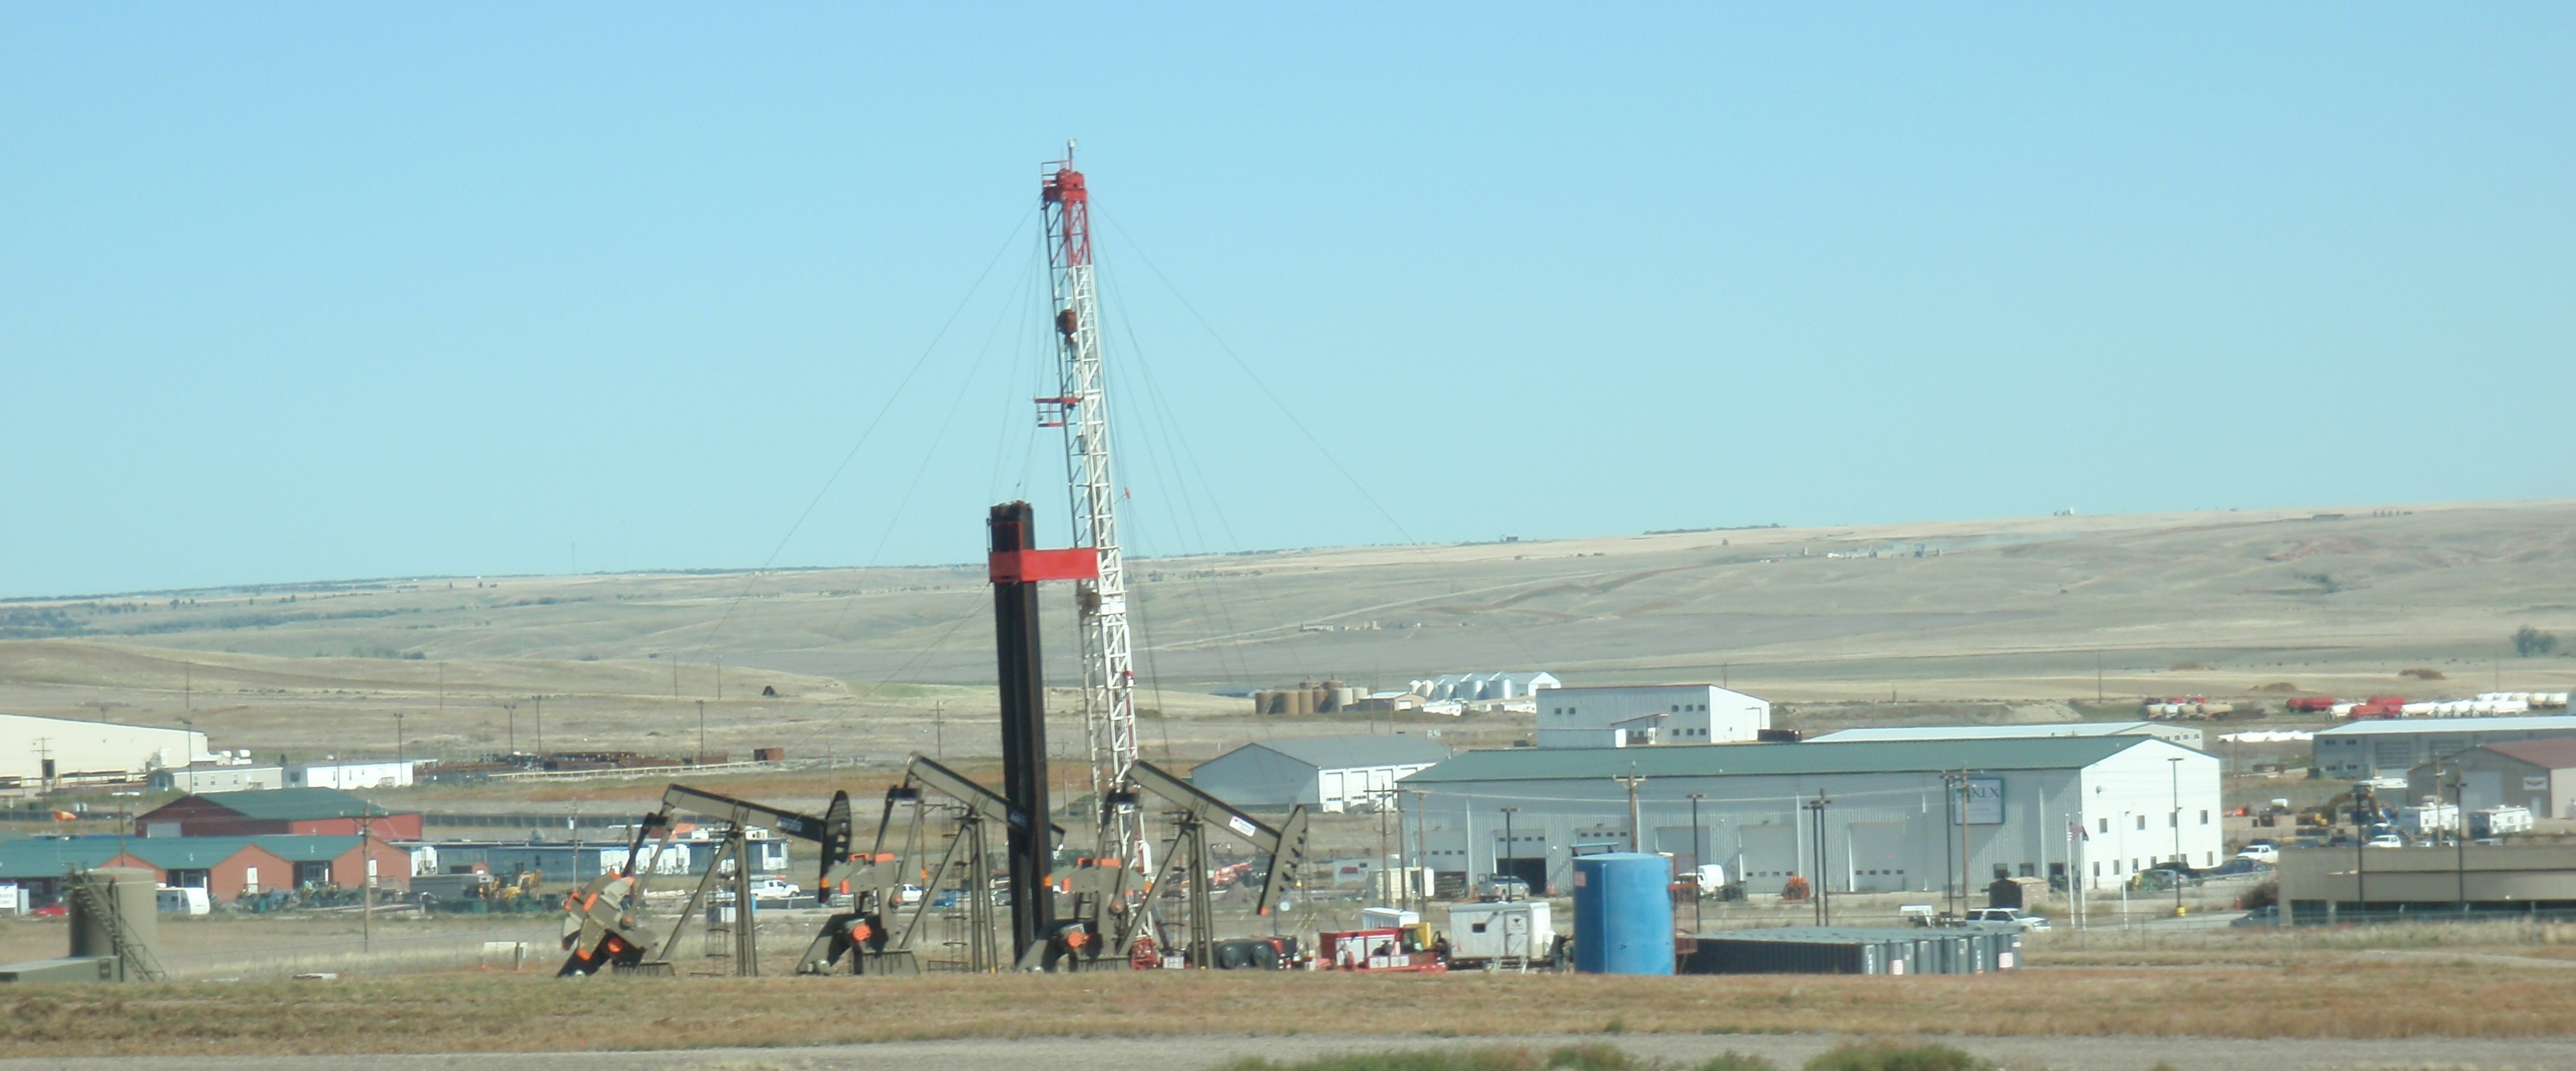 Workover rig on a 3-well pad in city limits of Willison. Photo by James Ulvog.